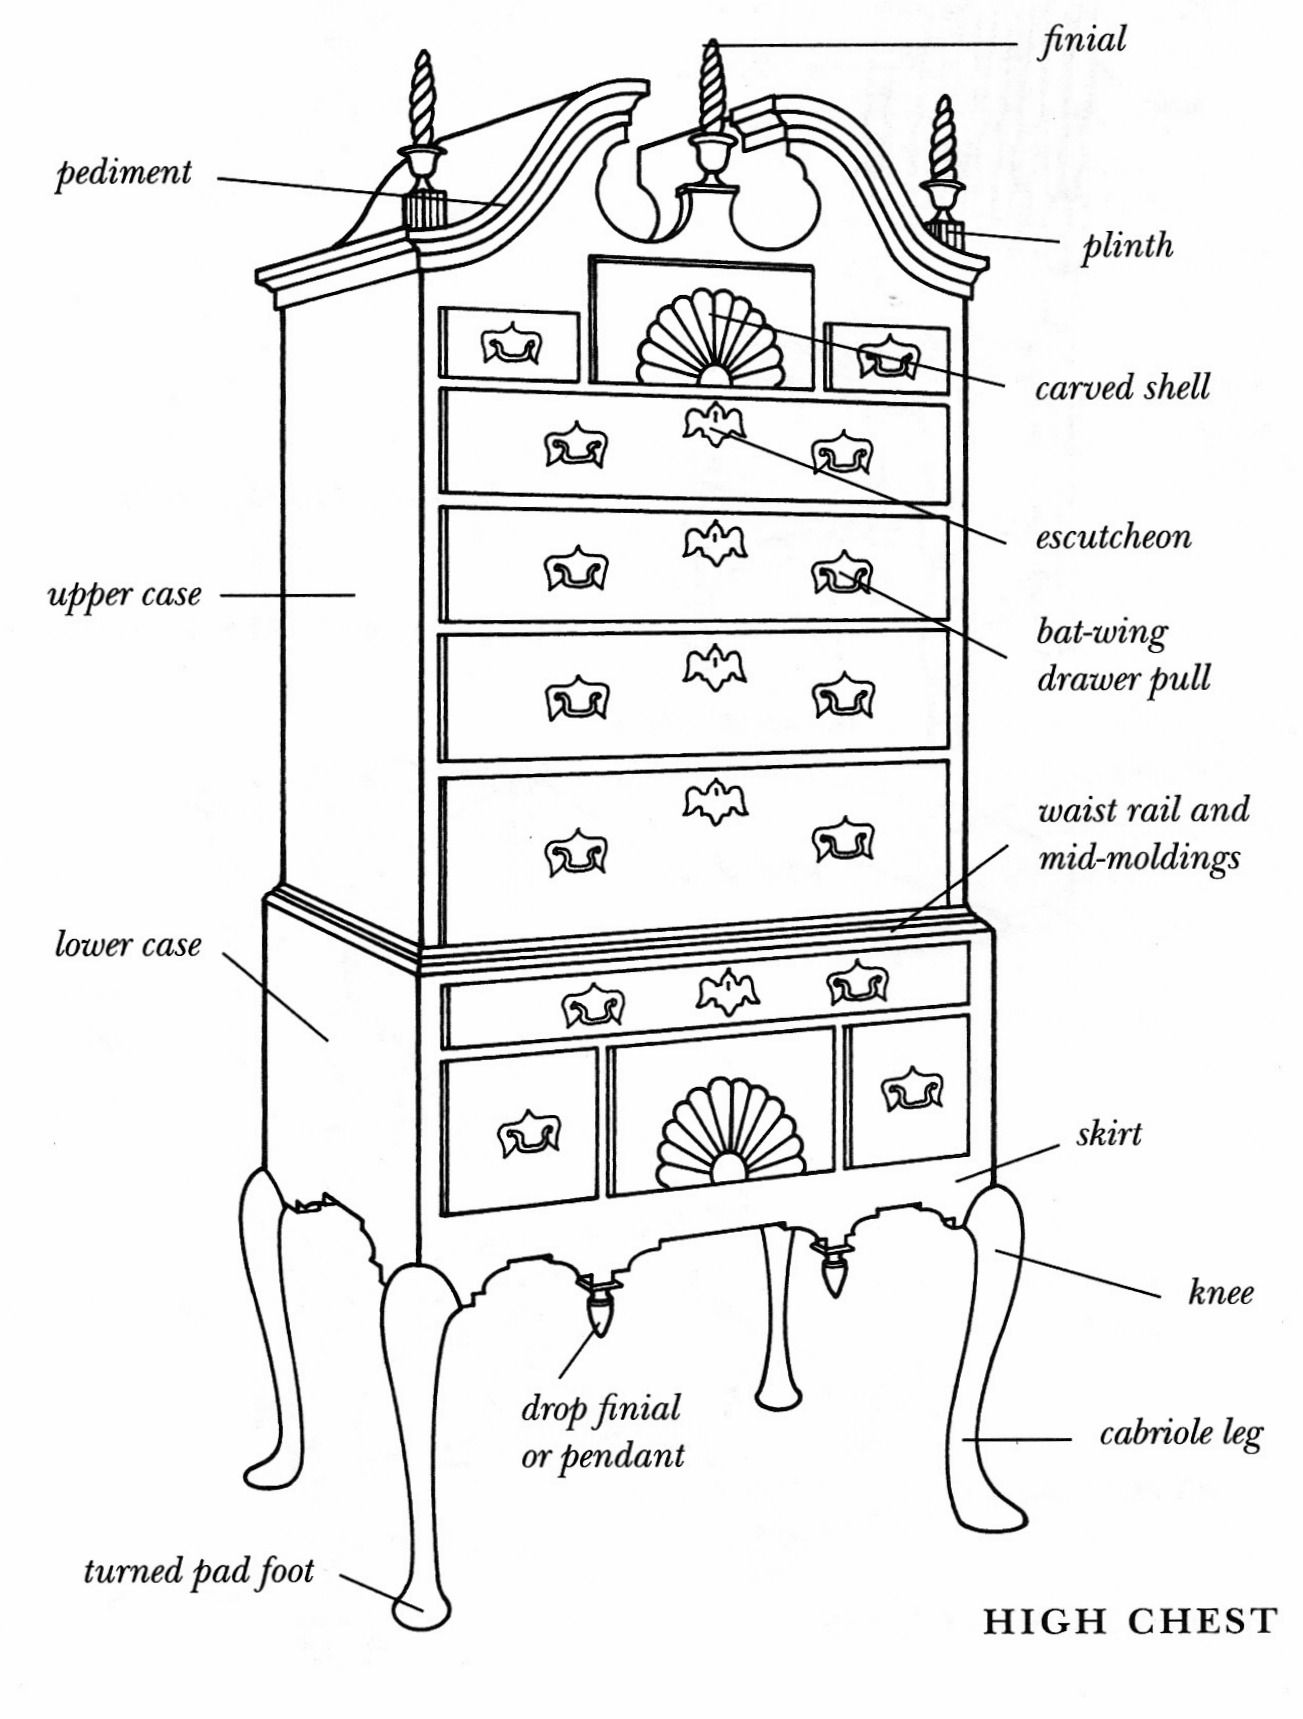 diagram of a high chest diagrams of antique furniture. Black Bedroom Furniture Sets. Home Design Ideas